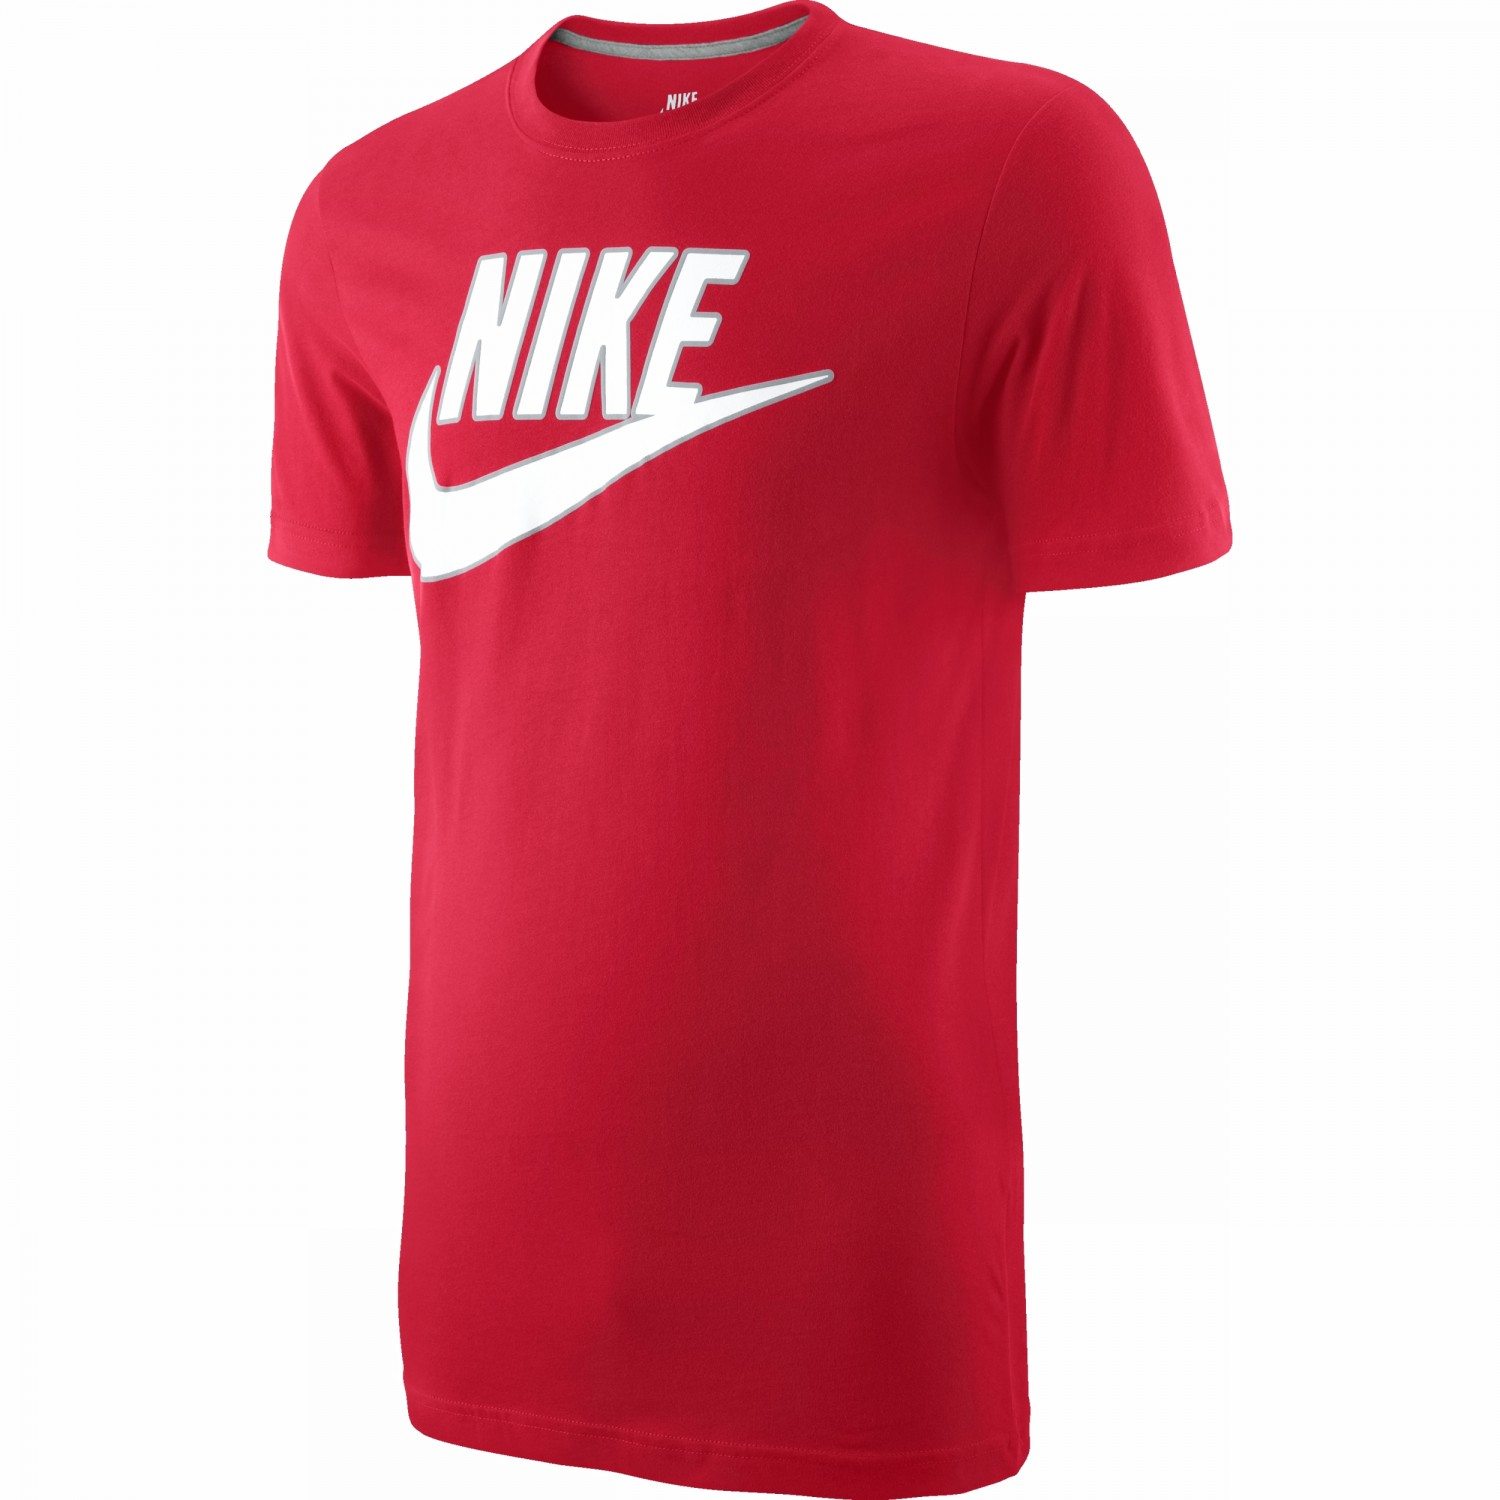 Mens Nike T Shirt Sptcas Spt Lsr Red Uk Size S M L Code